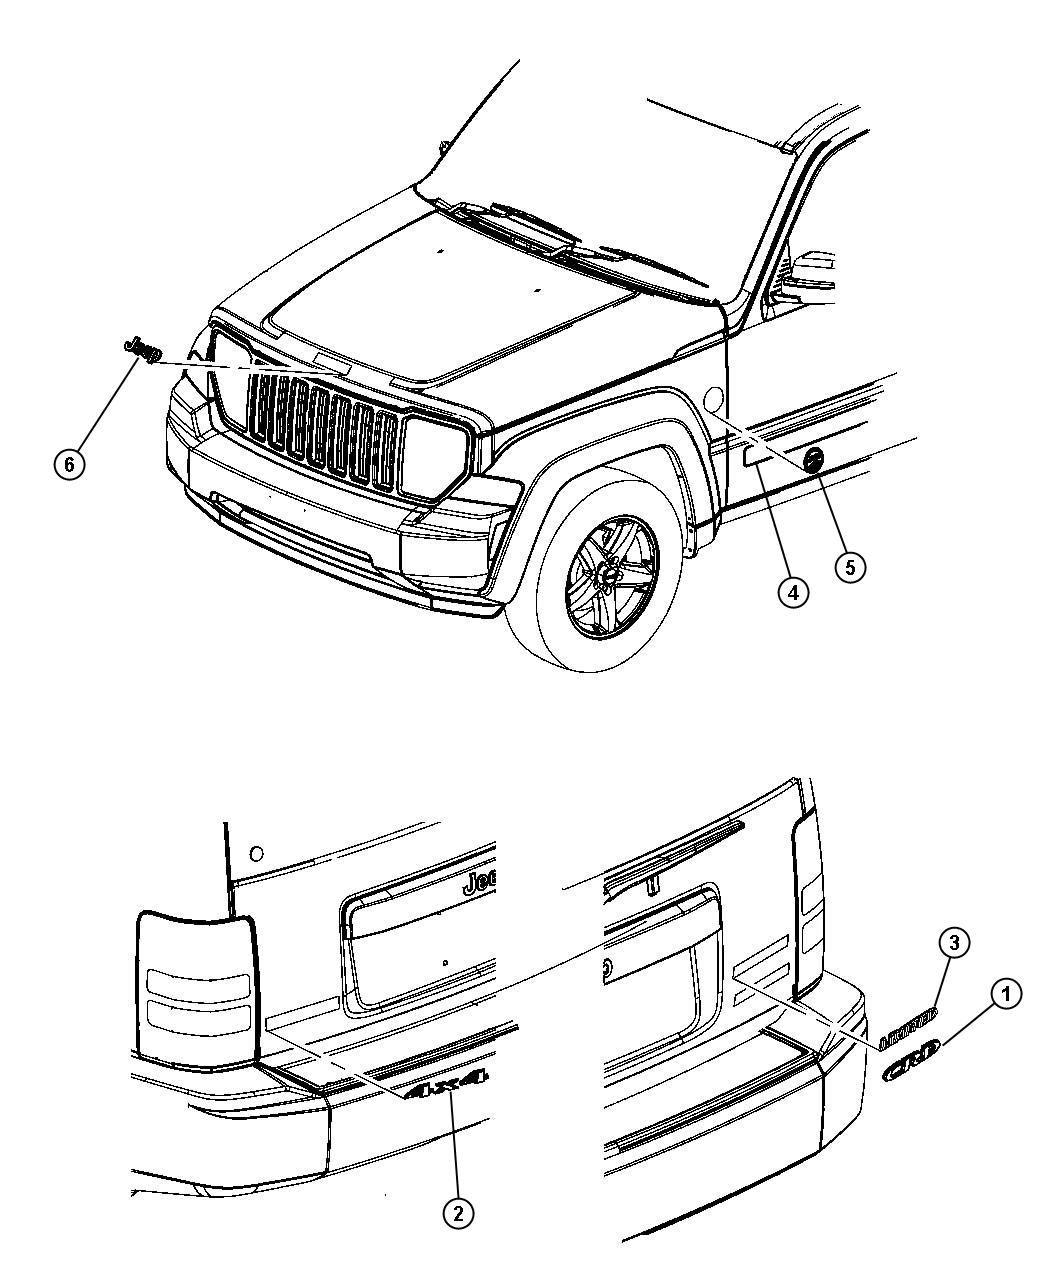 Jeep Liberty Renegade Hood Diagram Wiring Diagrams For Dummies 2003 Engine 2011 Decal Nameplate Right Left Sport